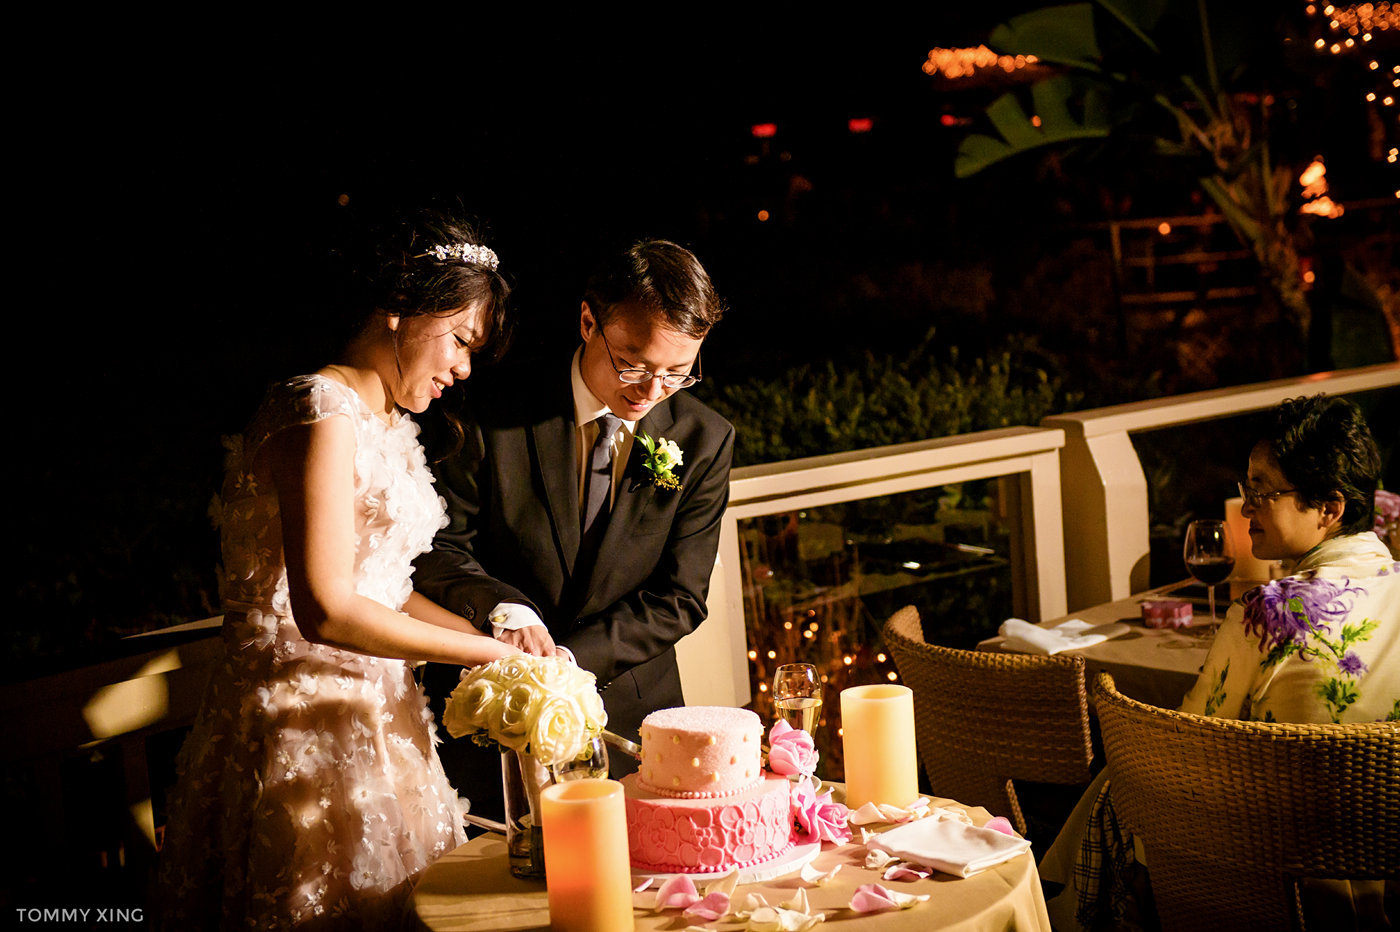 Qinglu Meng & Daozheng Chen Wedding Slideshow-223-E.JPG